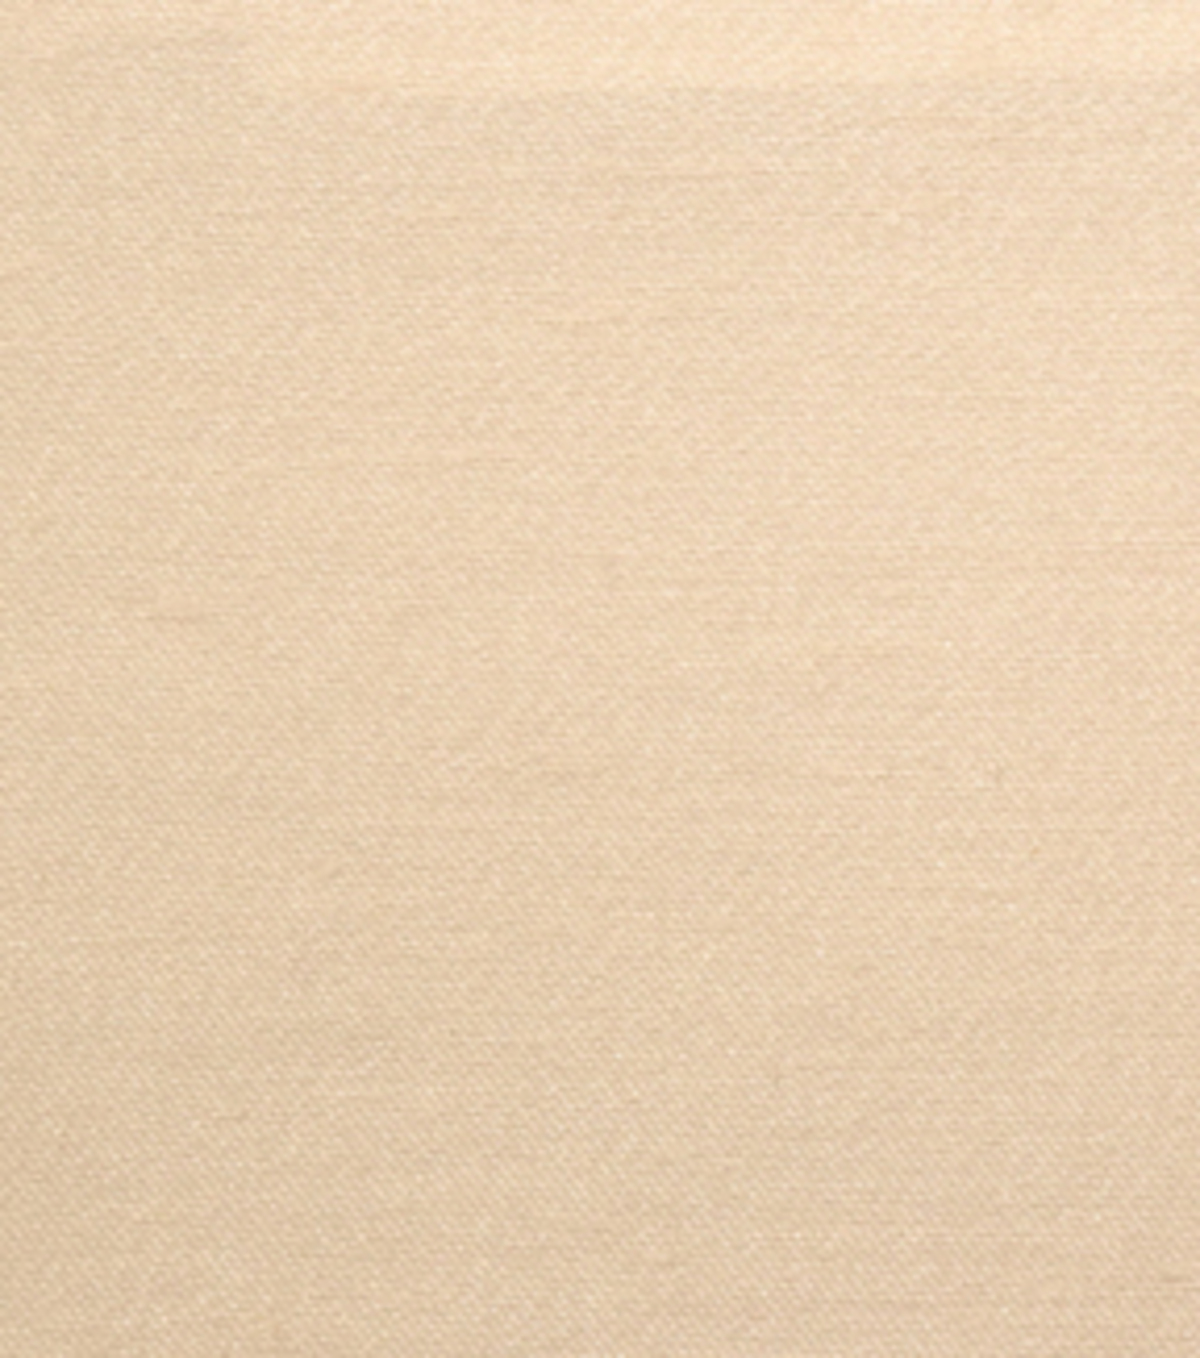 Home Decor 8\u0022x8\u0022 Fabric Swatch-Signature Series Antique Satin Ivory